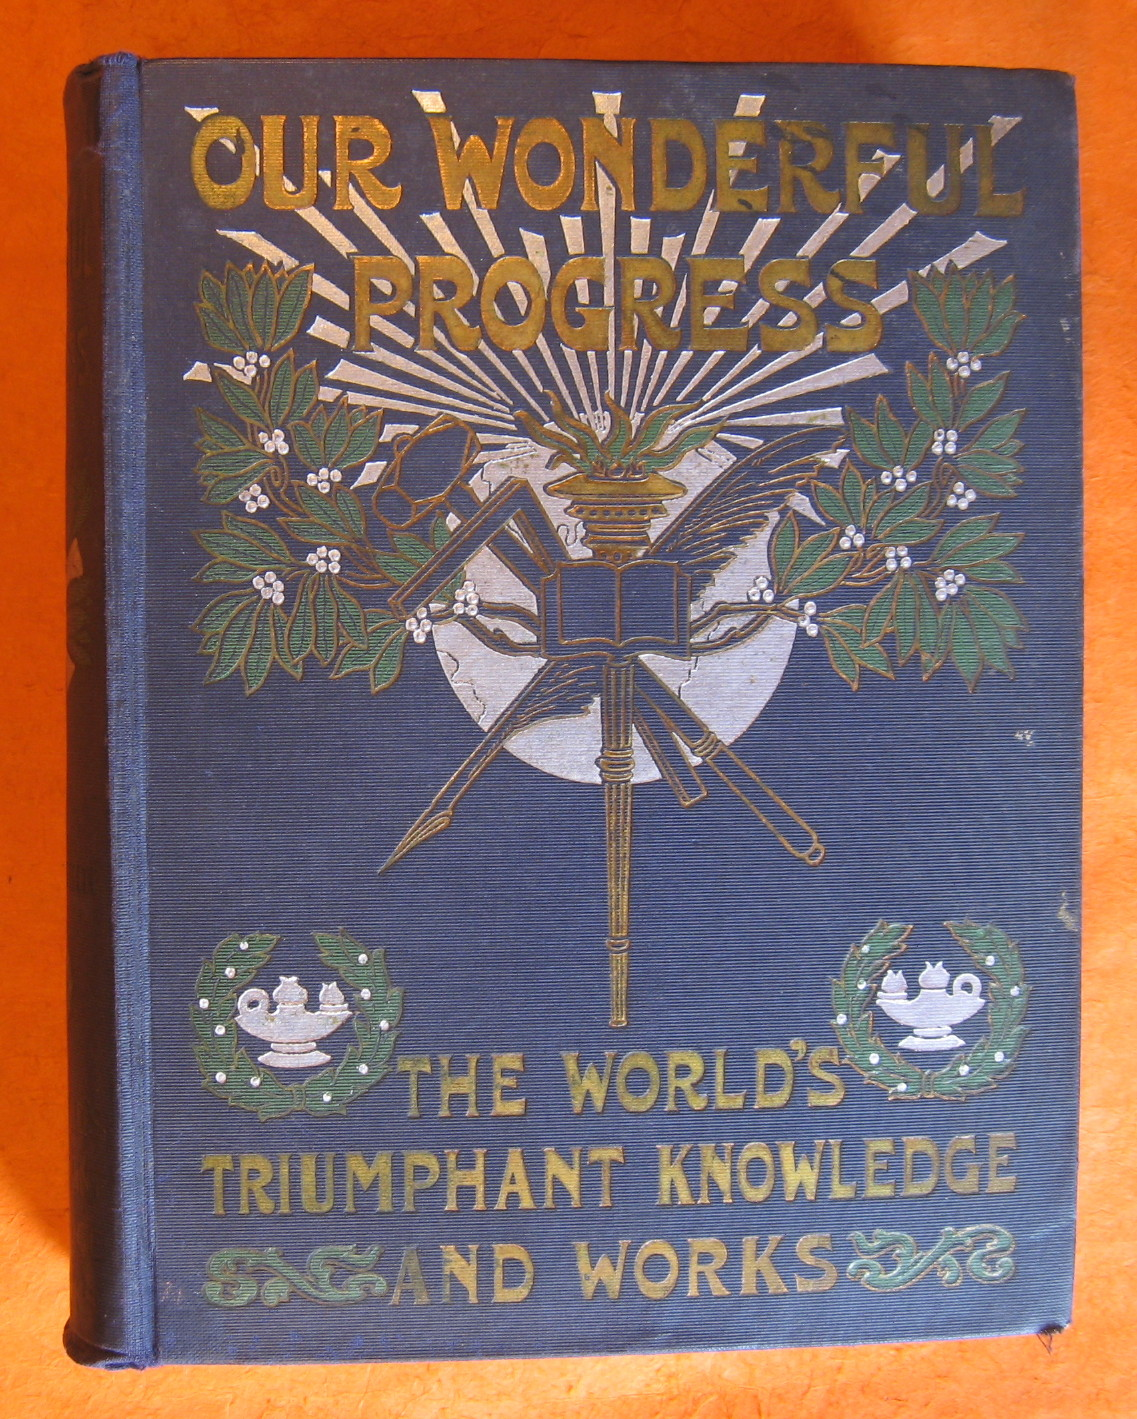 Our Wonderful Progress: The World's Triumphant Knowledge and Works: a Vast Treasury and Compendium of the Achievements of Man and the Works of Nature, White, Trumbull (ed.)